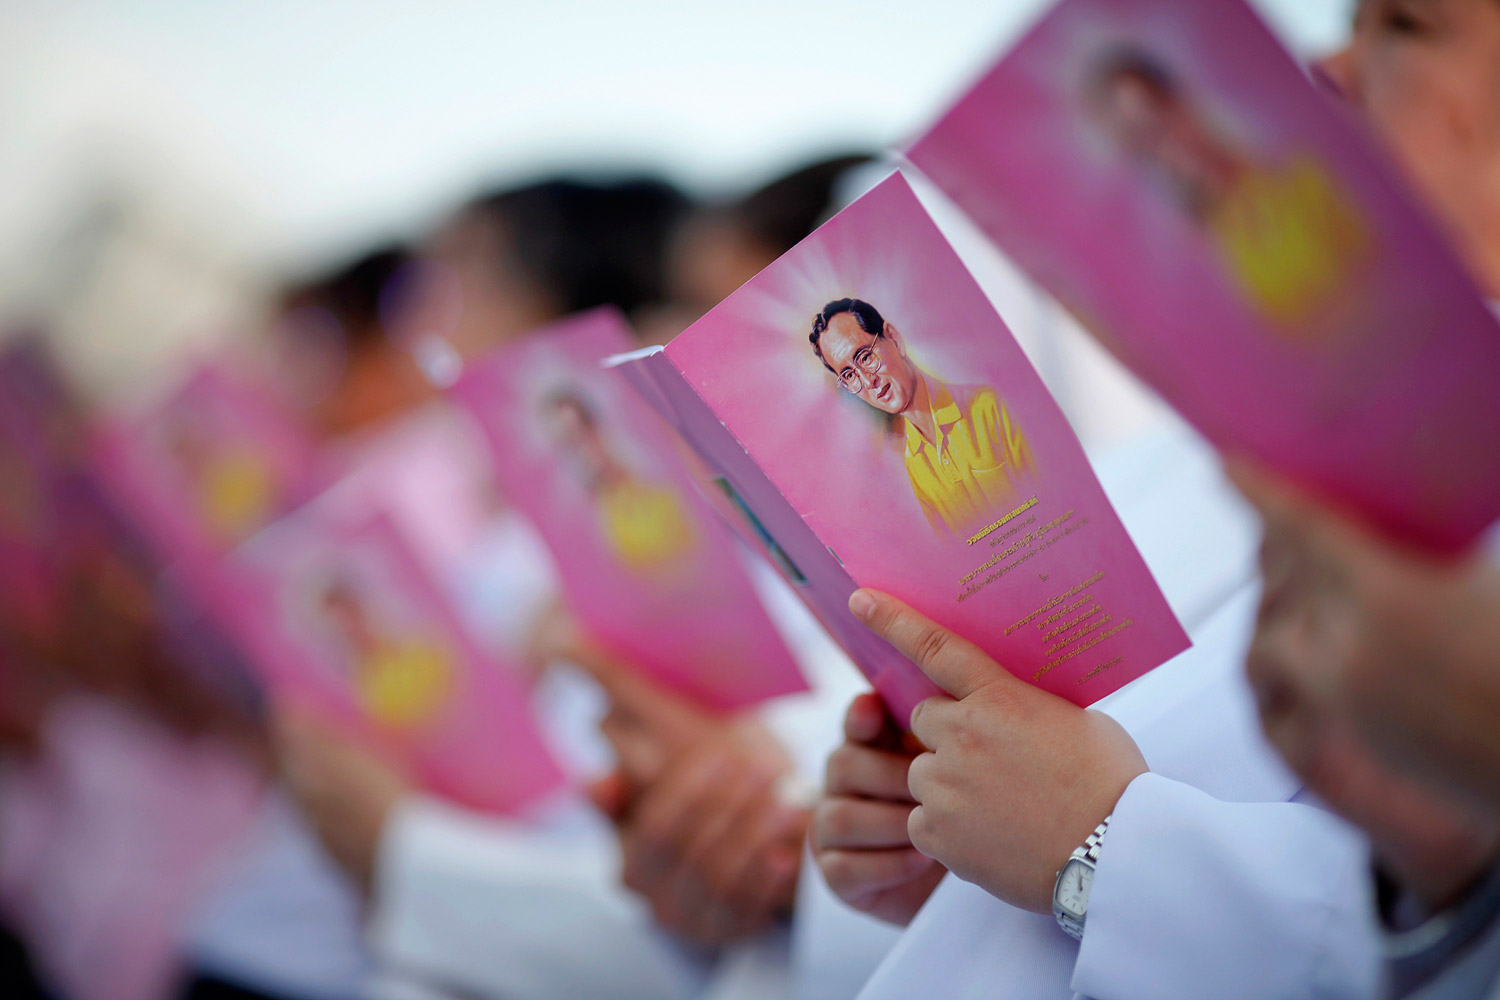 December 5, 2011. Catholic nuns hold booklets with pictures of Thailand's King Bhumibol Adulyadej as they sing outside the Royal Palace in Bangkok to mark his 84th birthday.